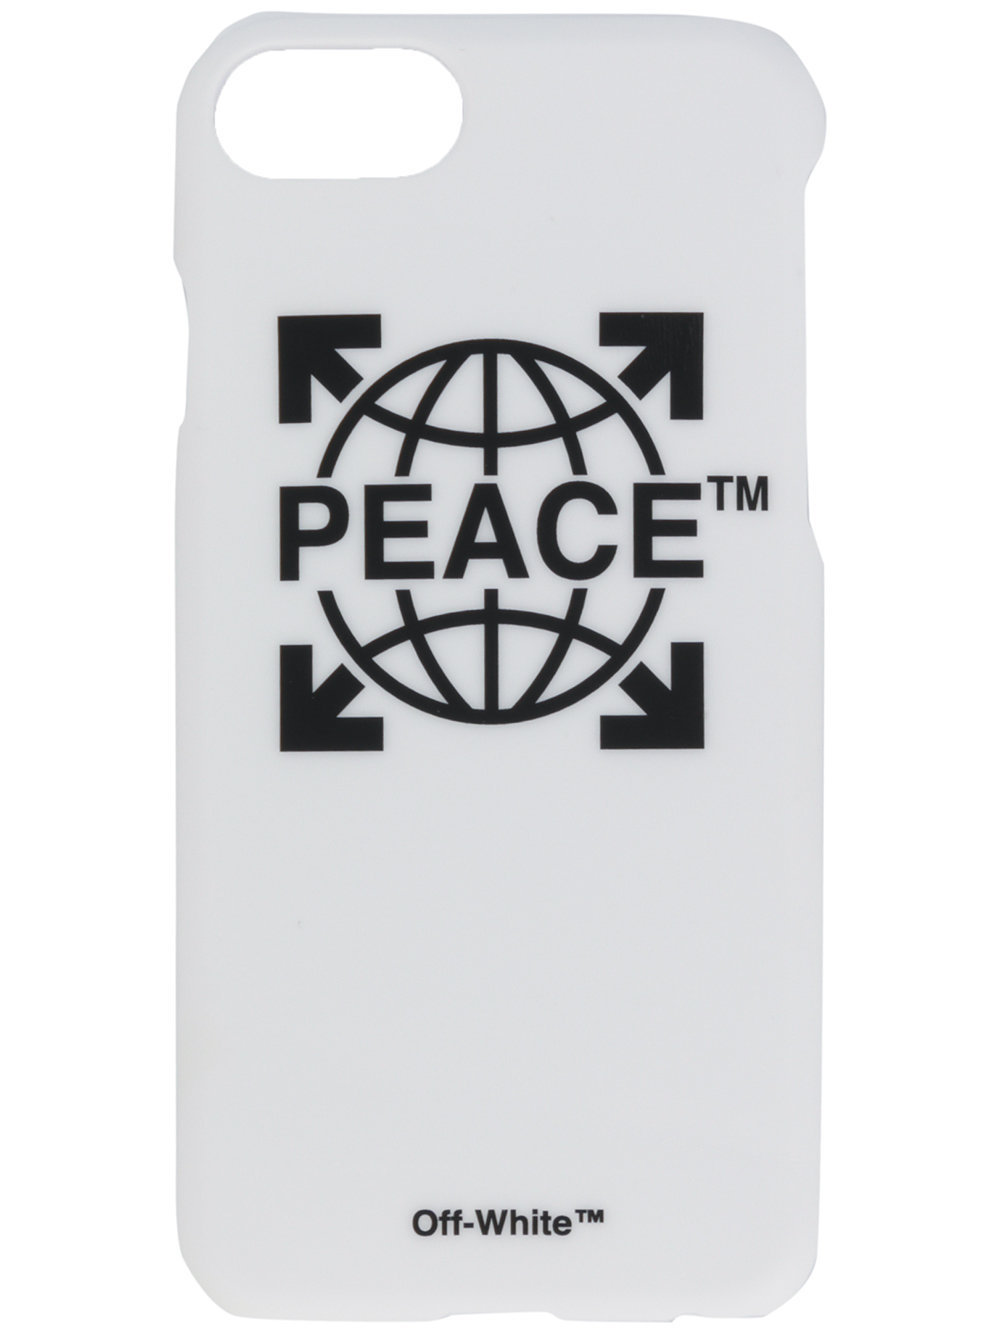 OFF-WHITE★PEACE iPhone 7 ケース ホワイト